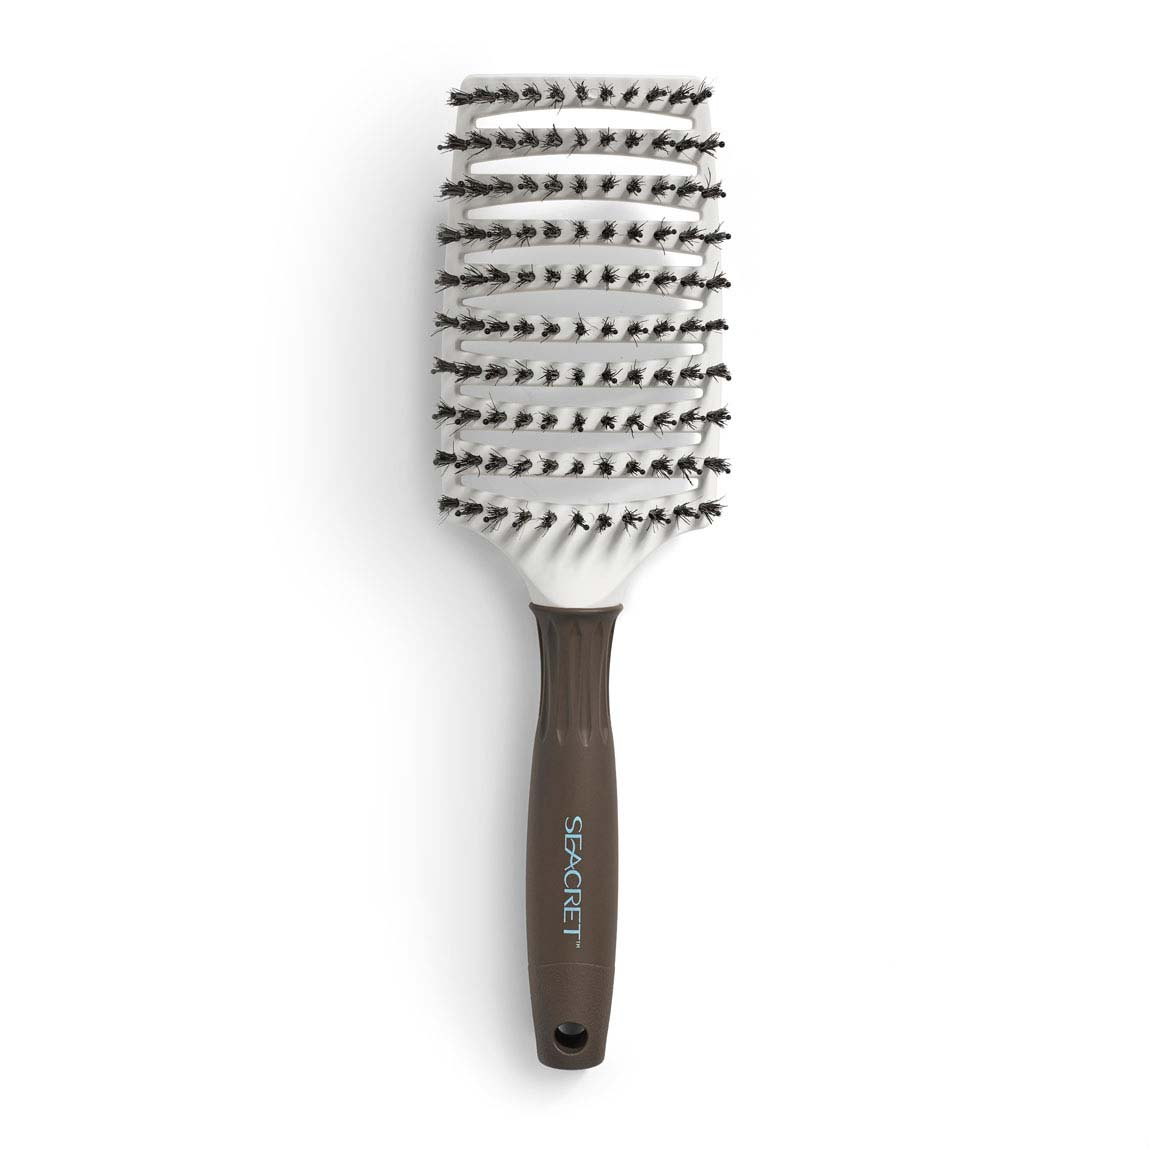 Pro Styling Wide Hair Brush - Pro Styling Wide Hair Brush